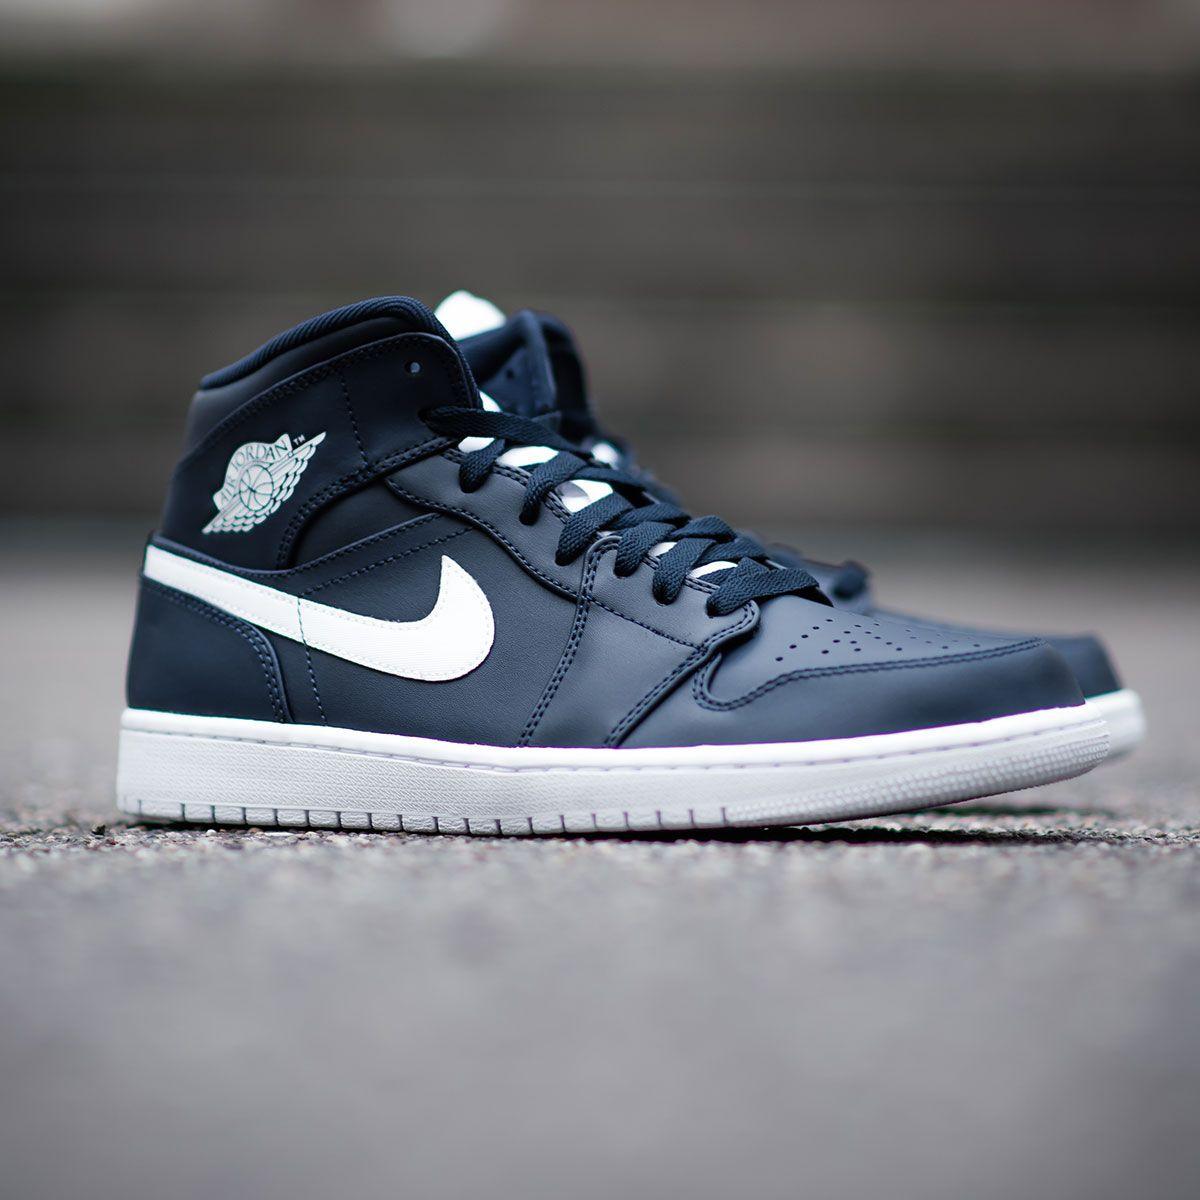 Yankees colors on the Air Jordan 1, that's a perfect match